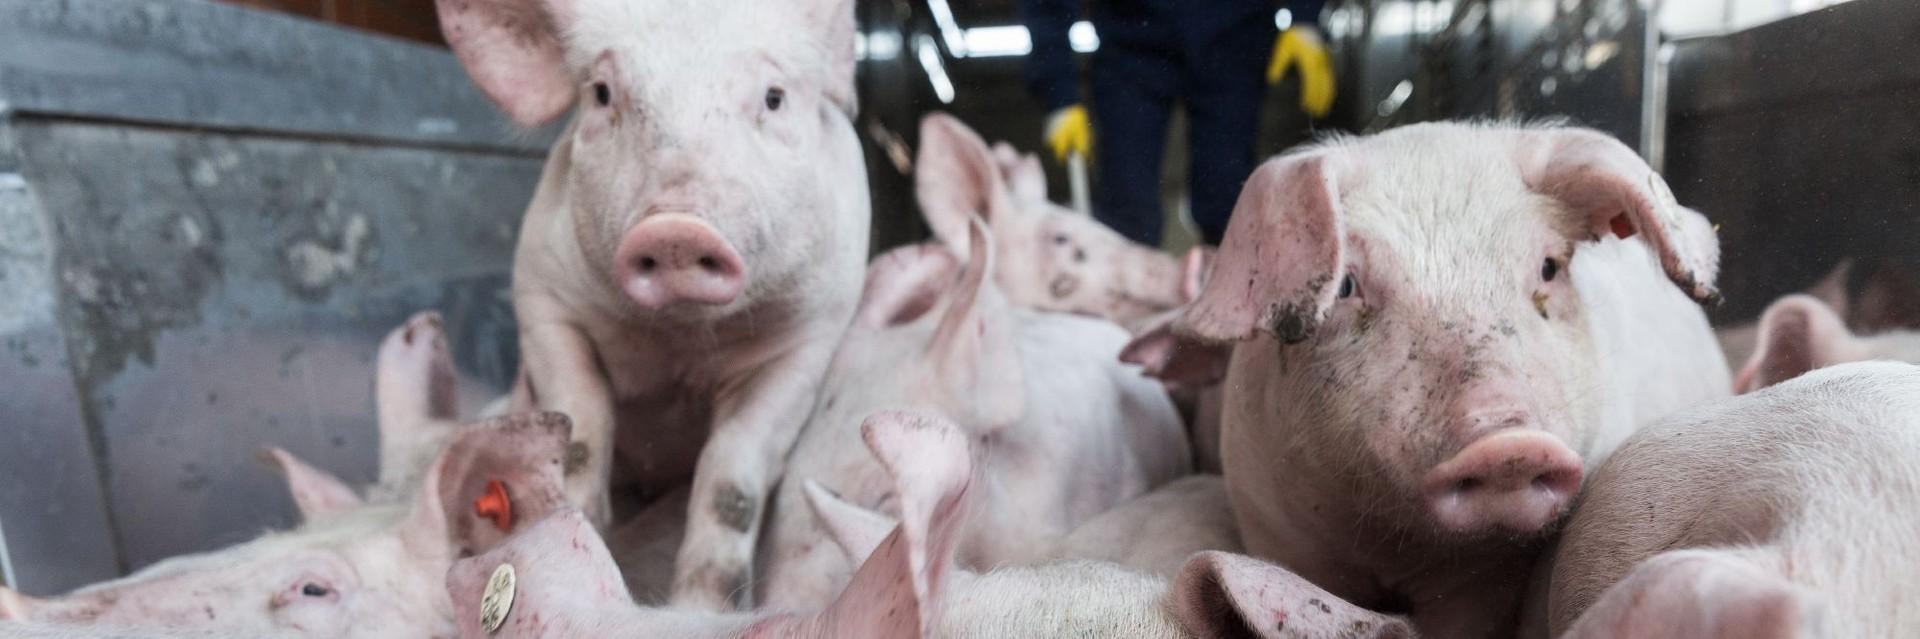 Pigs in live animal transport